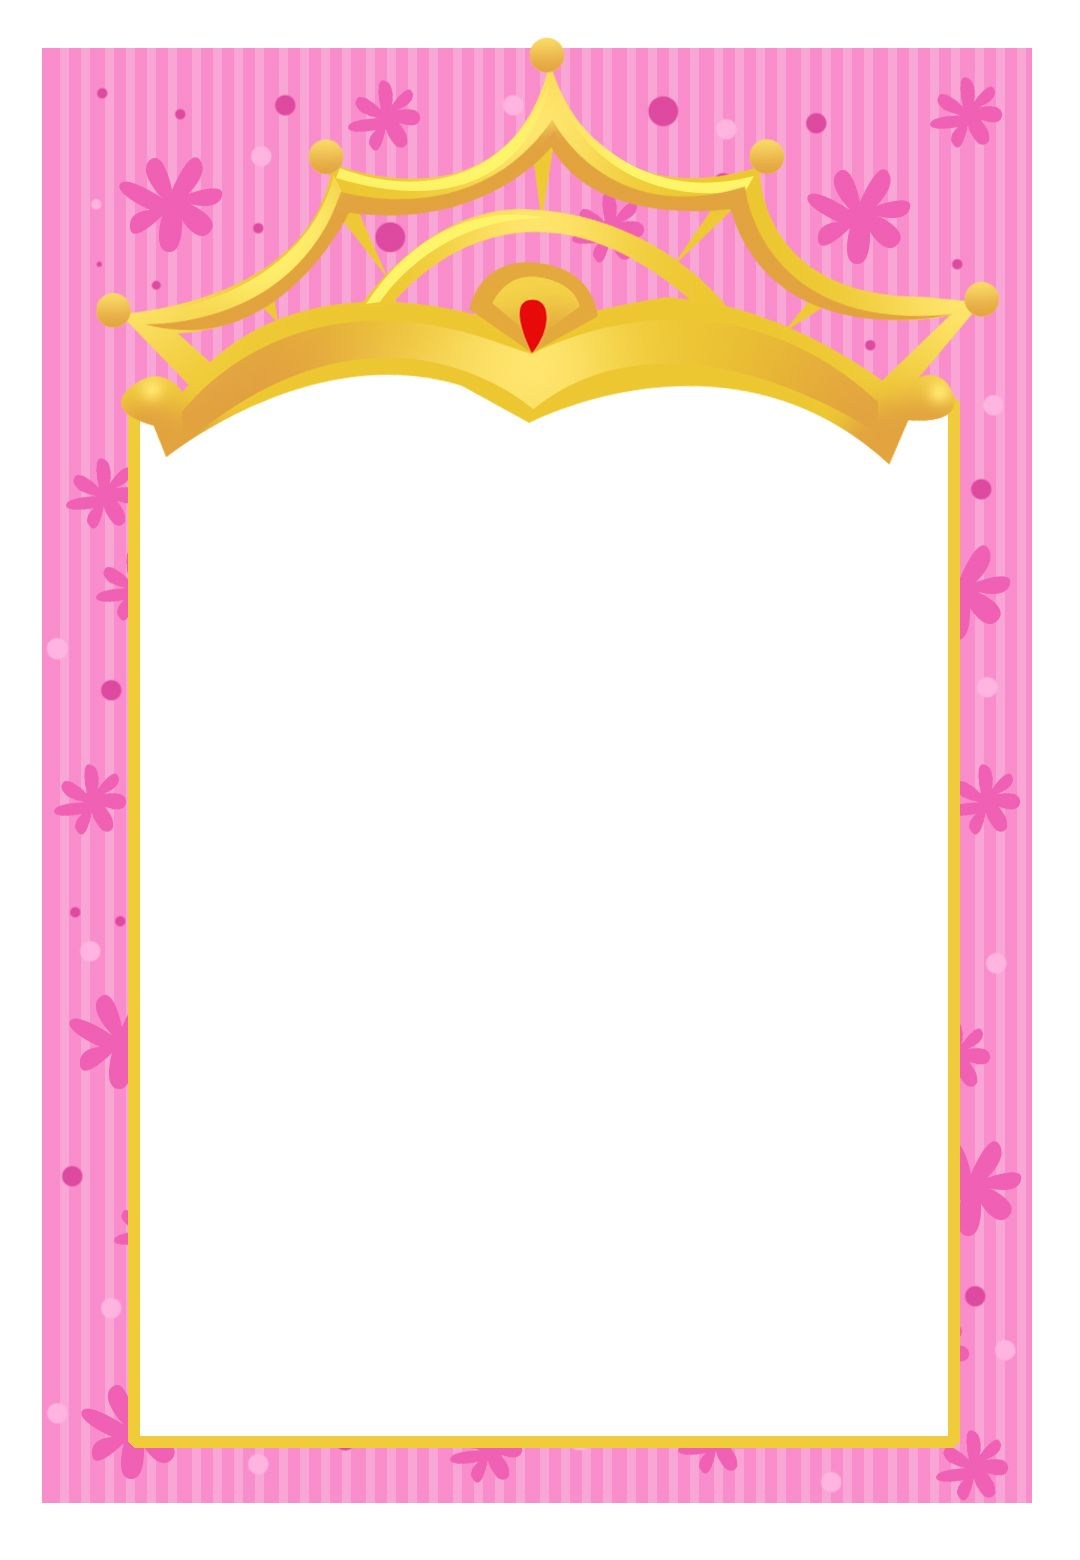 printable a little princess invitation another template printable a little princess invitation another template and you chose the text and can